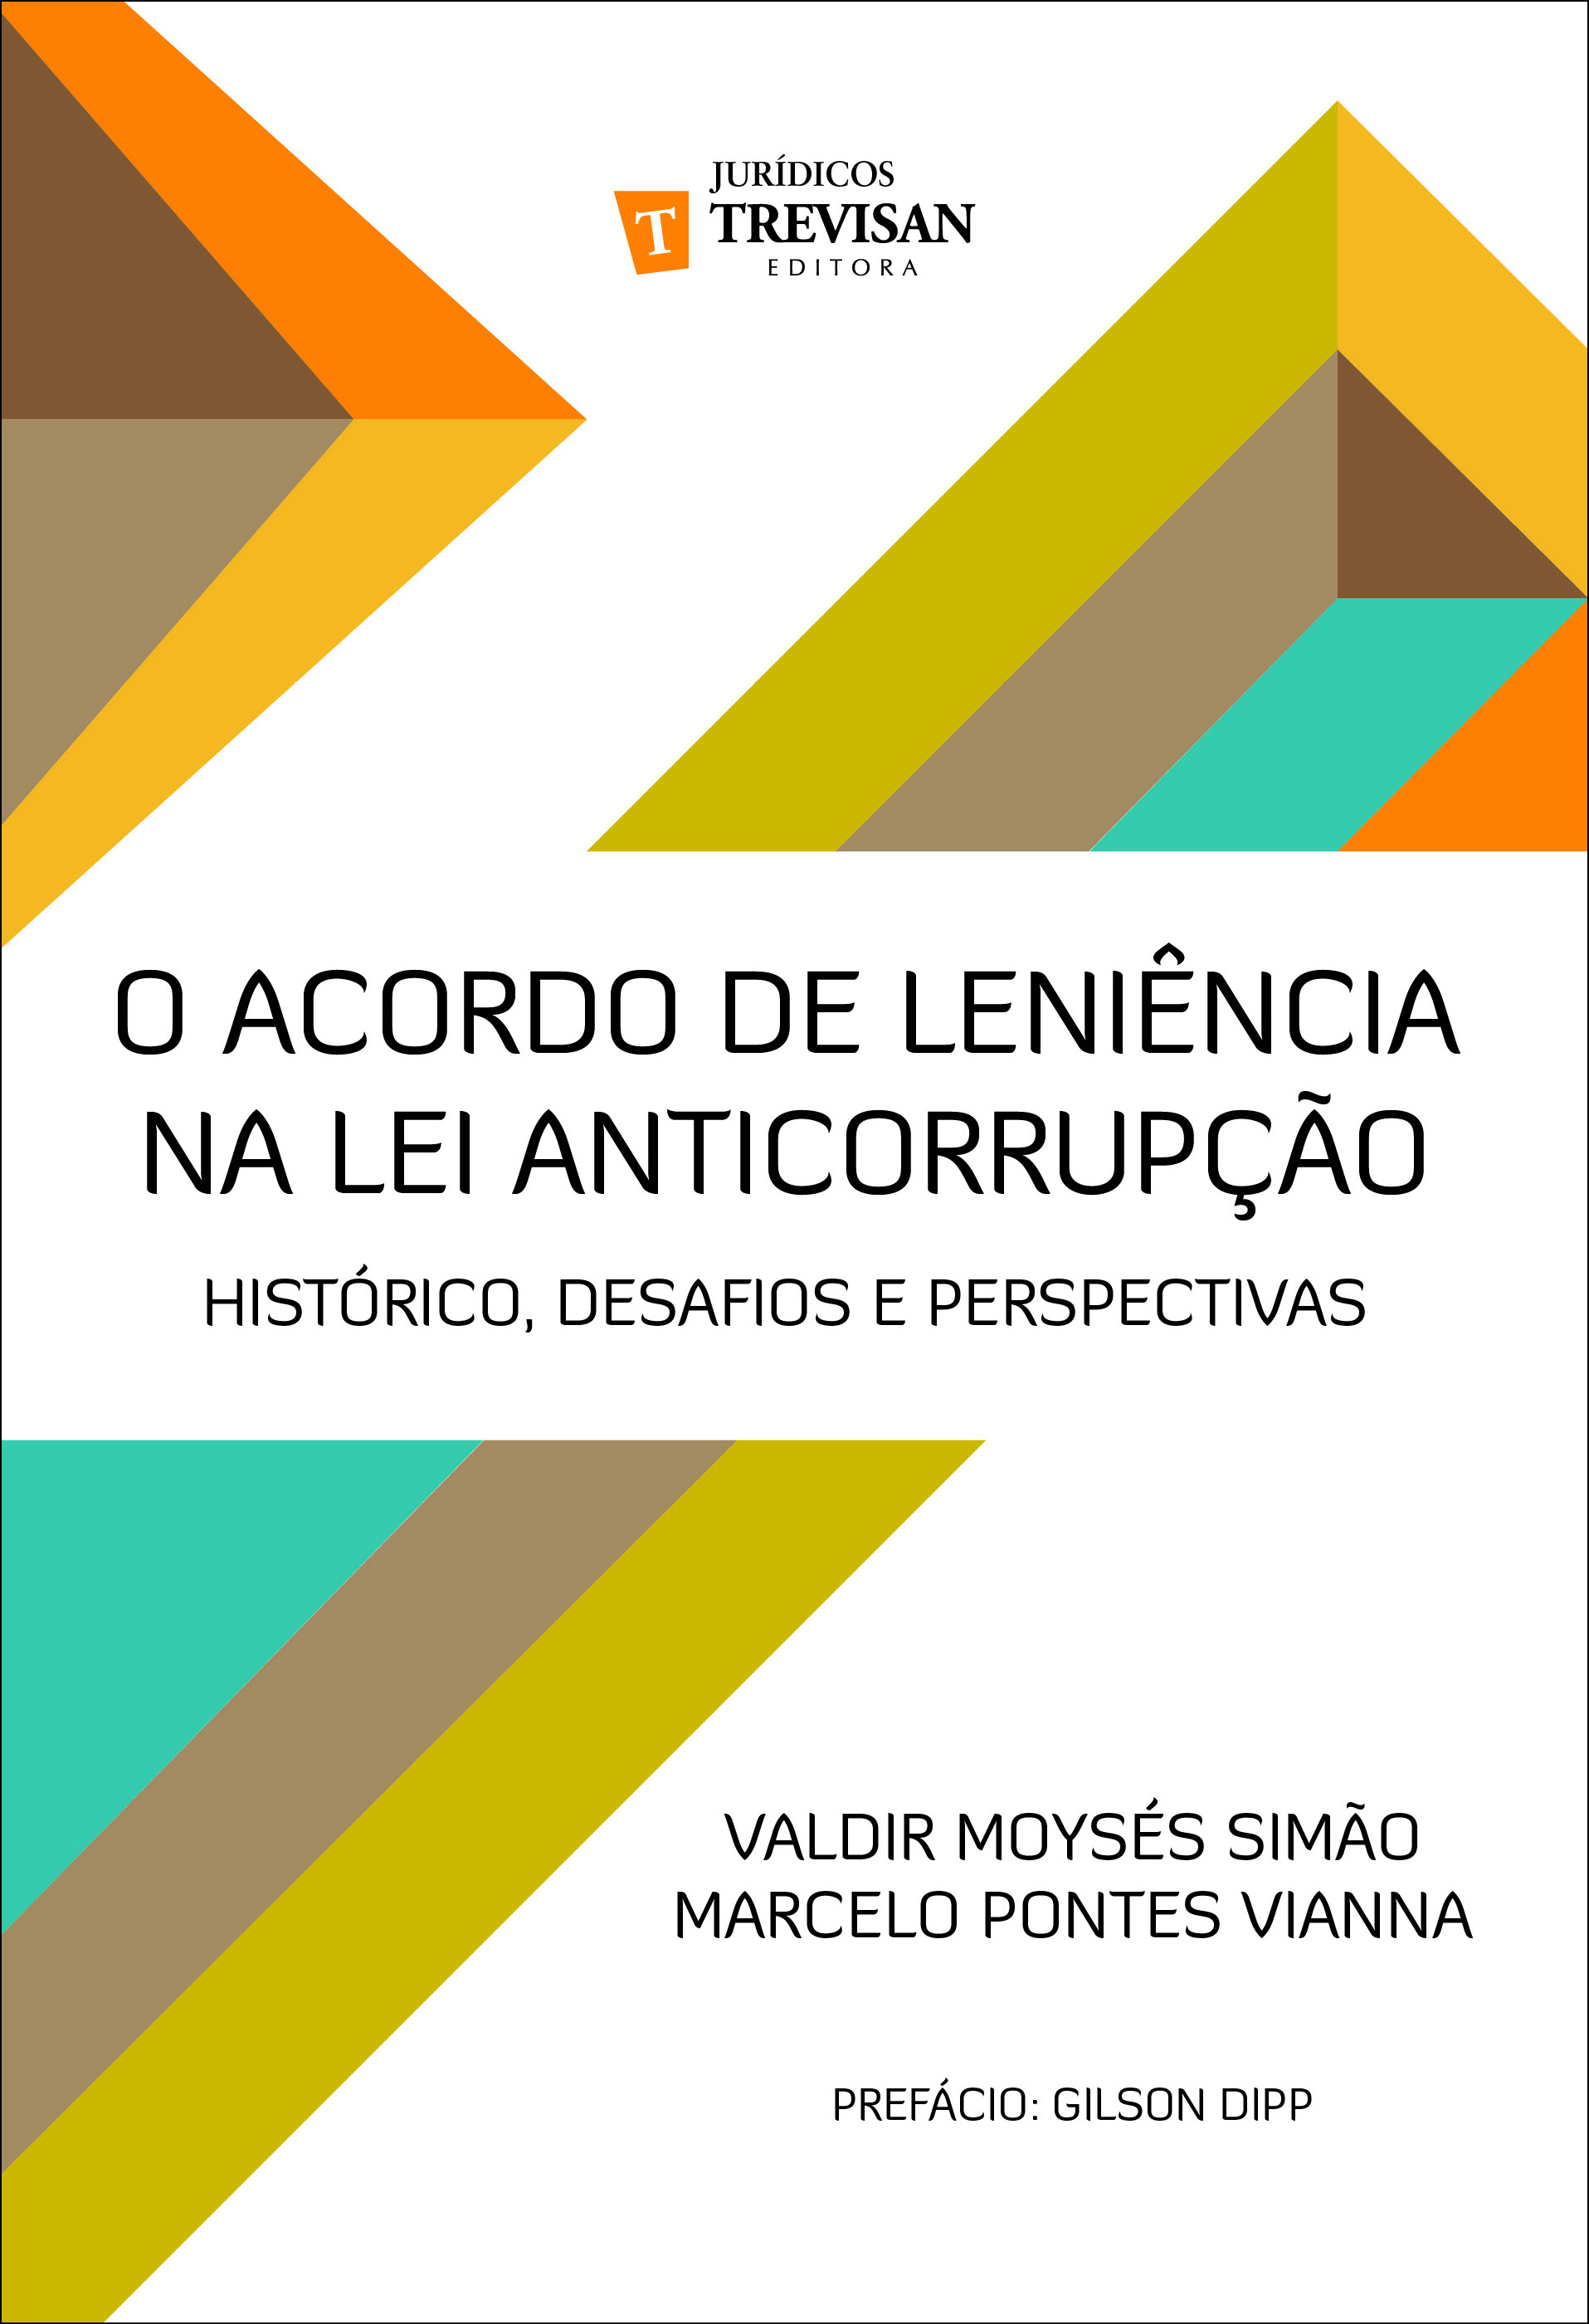 O acordo de leniência na lei anticorrupção: histórico, desafios e perspectivas